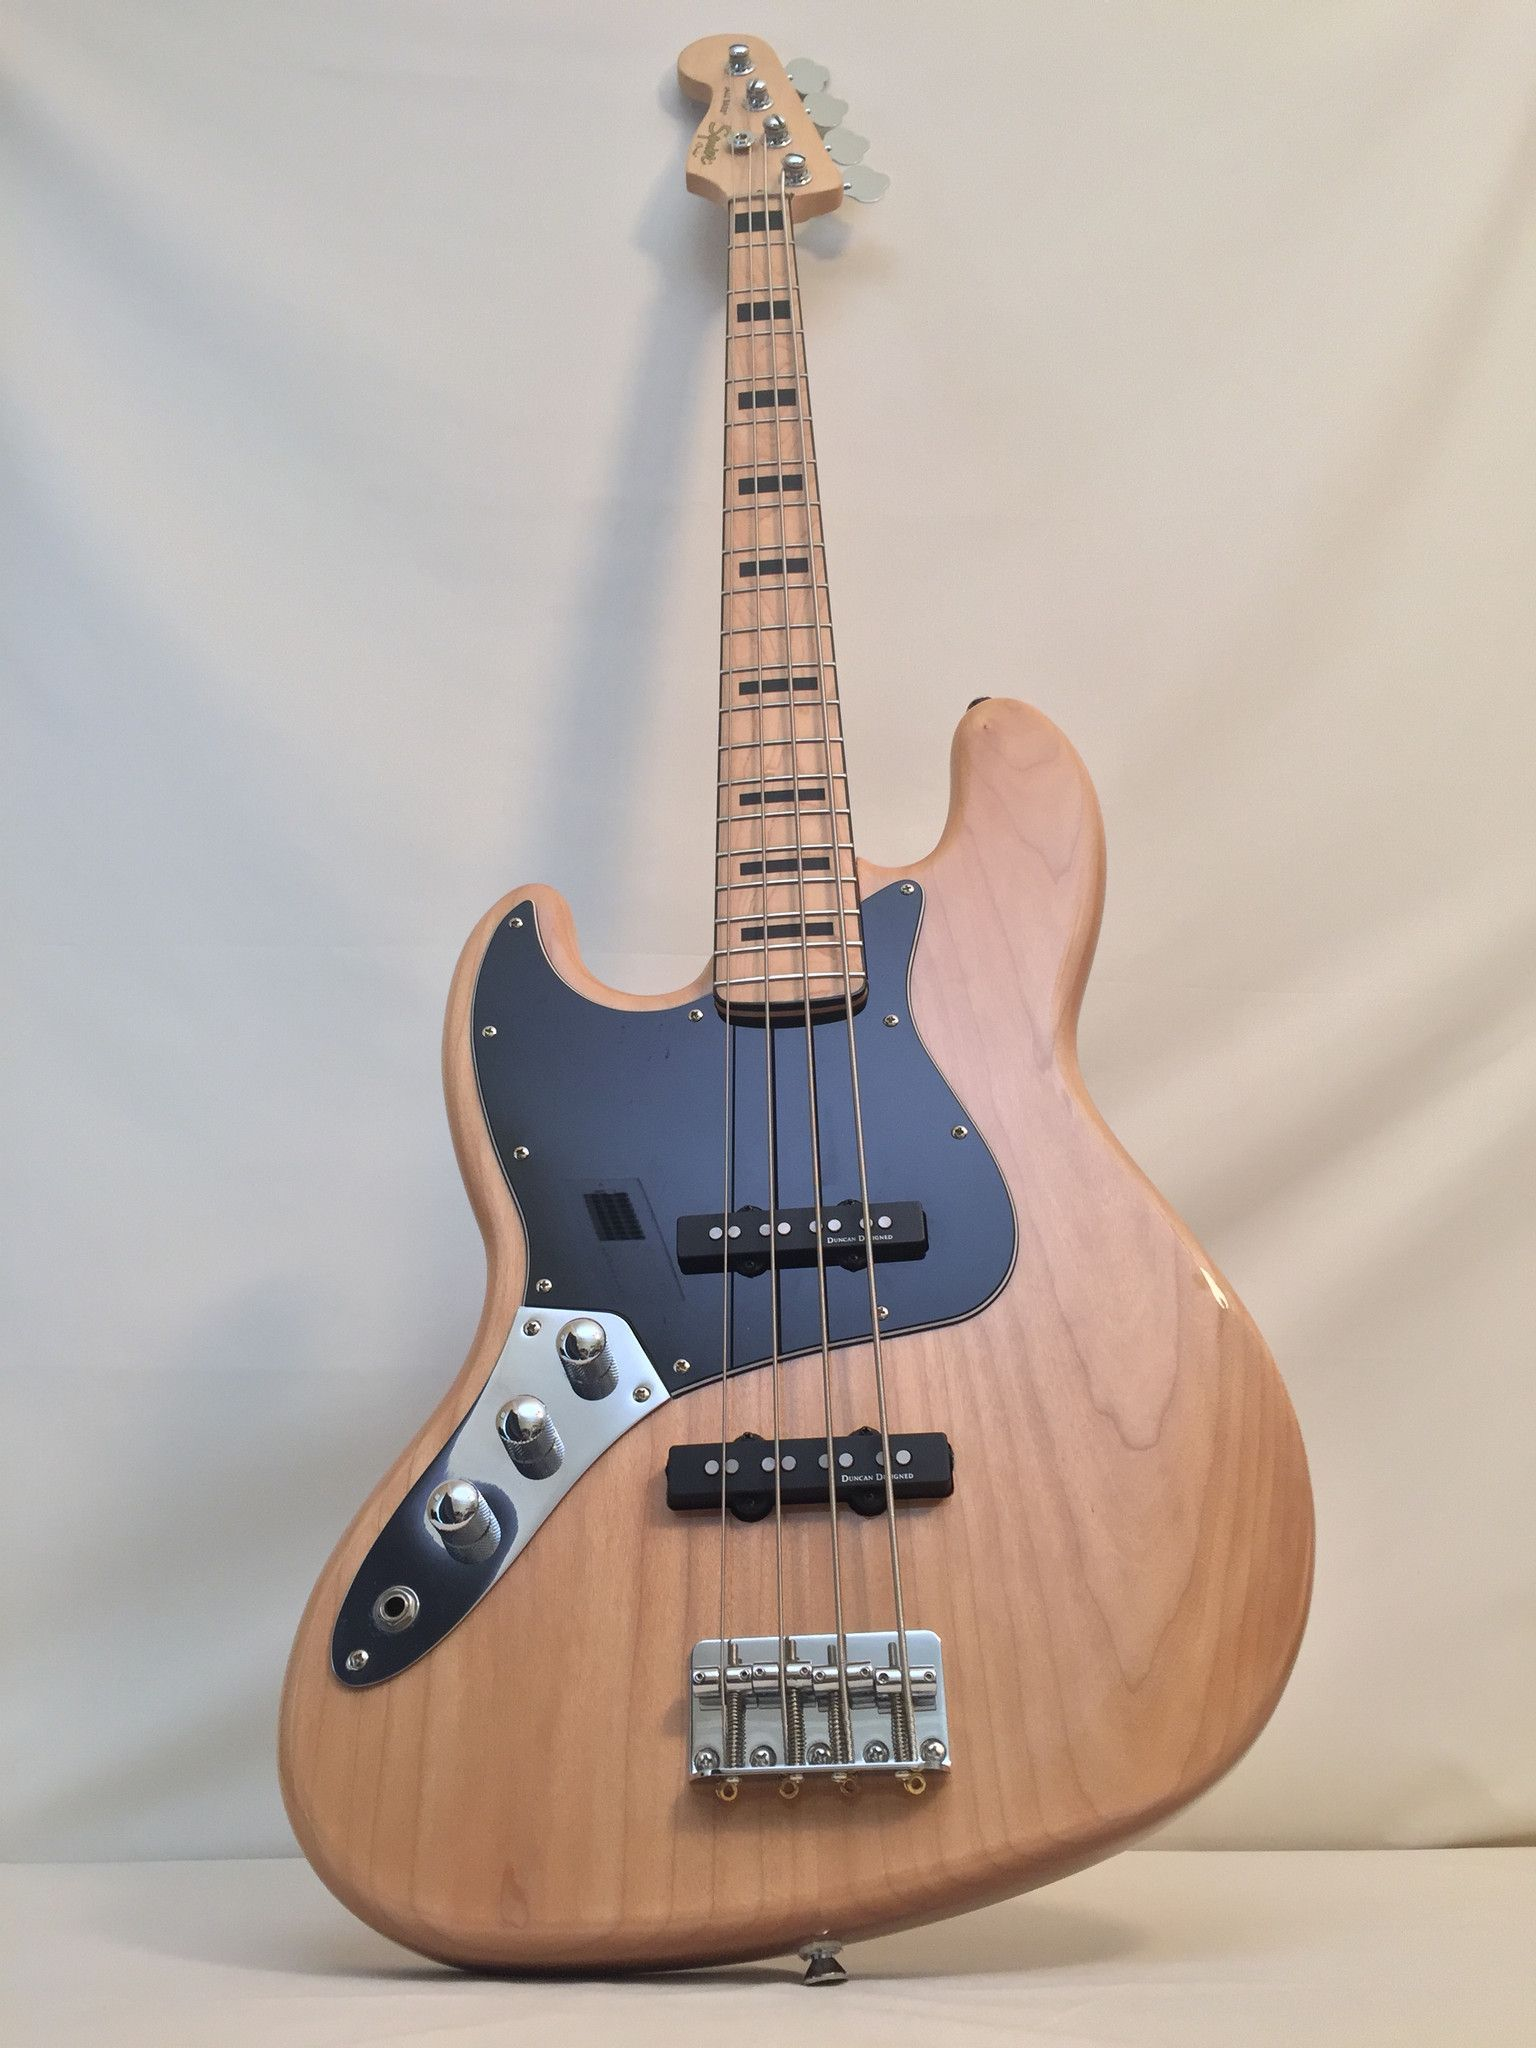 Fender Squier Vintage Modified Jazz Bass 70s Left Handed With Images Fender Squier Guitar Left Handed